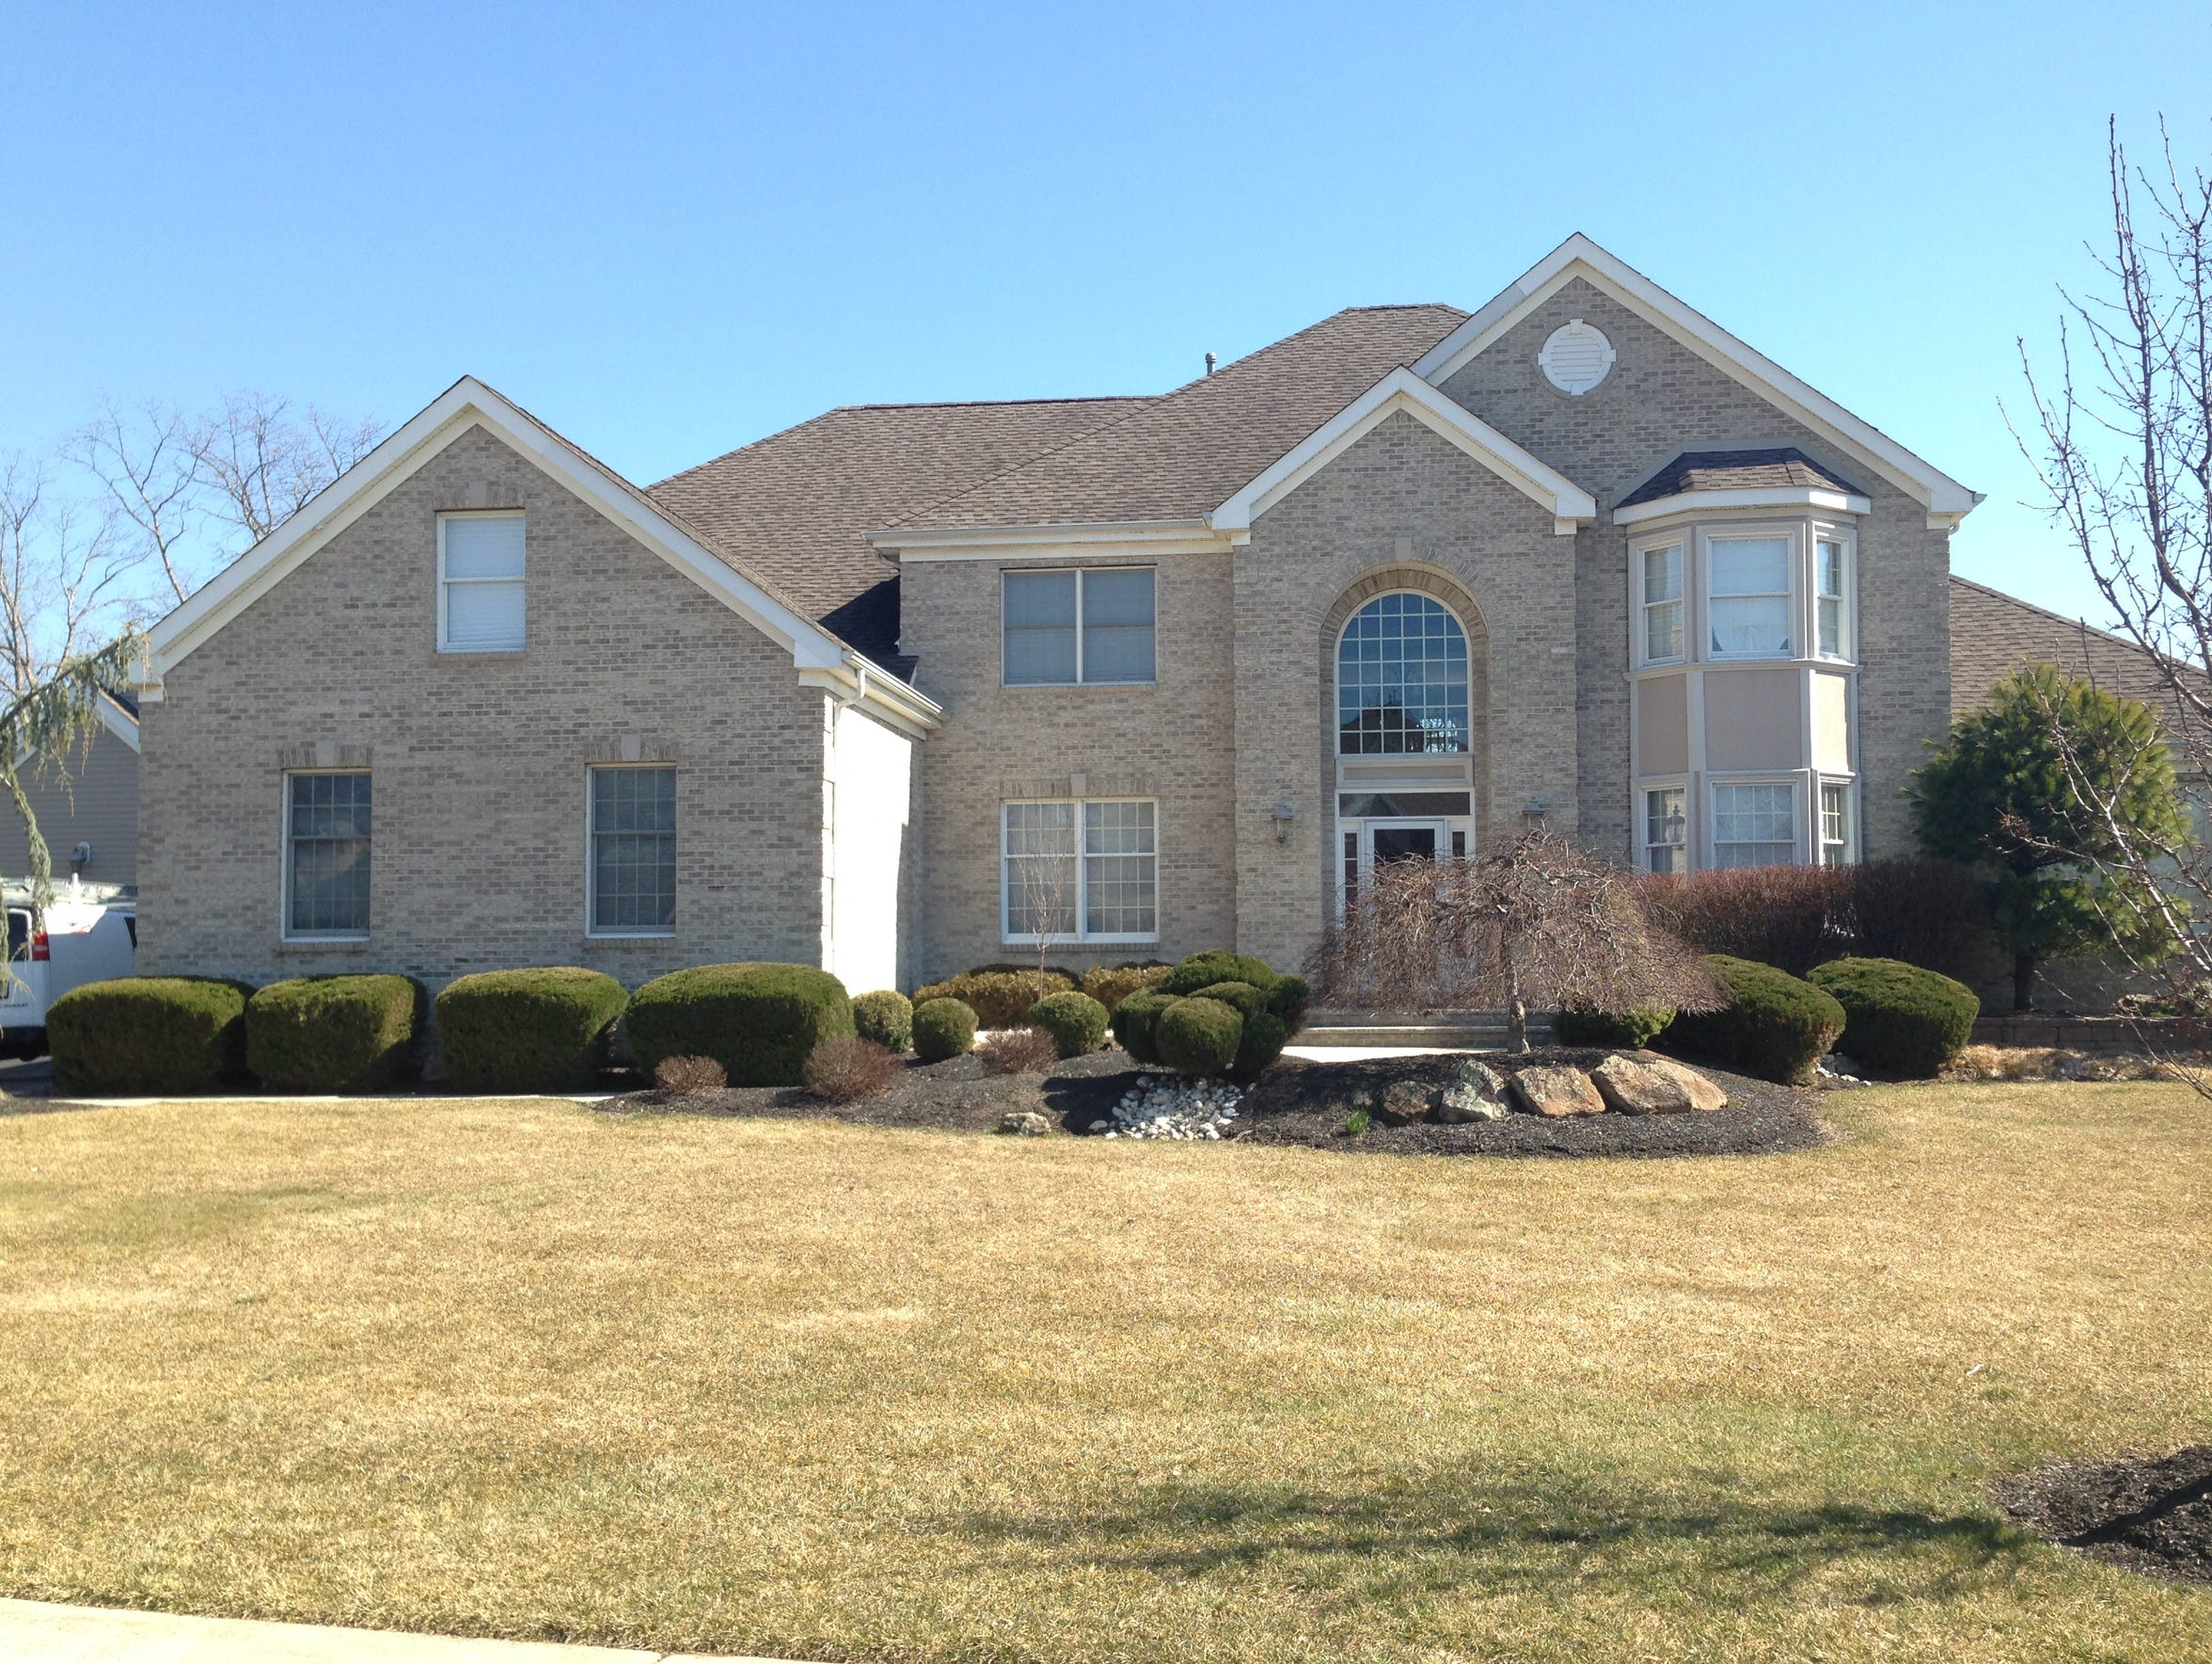 A home on Fiddlers Run in North Dover sold last year